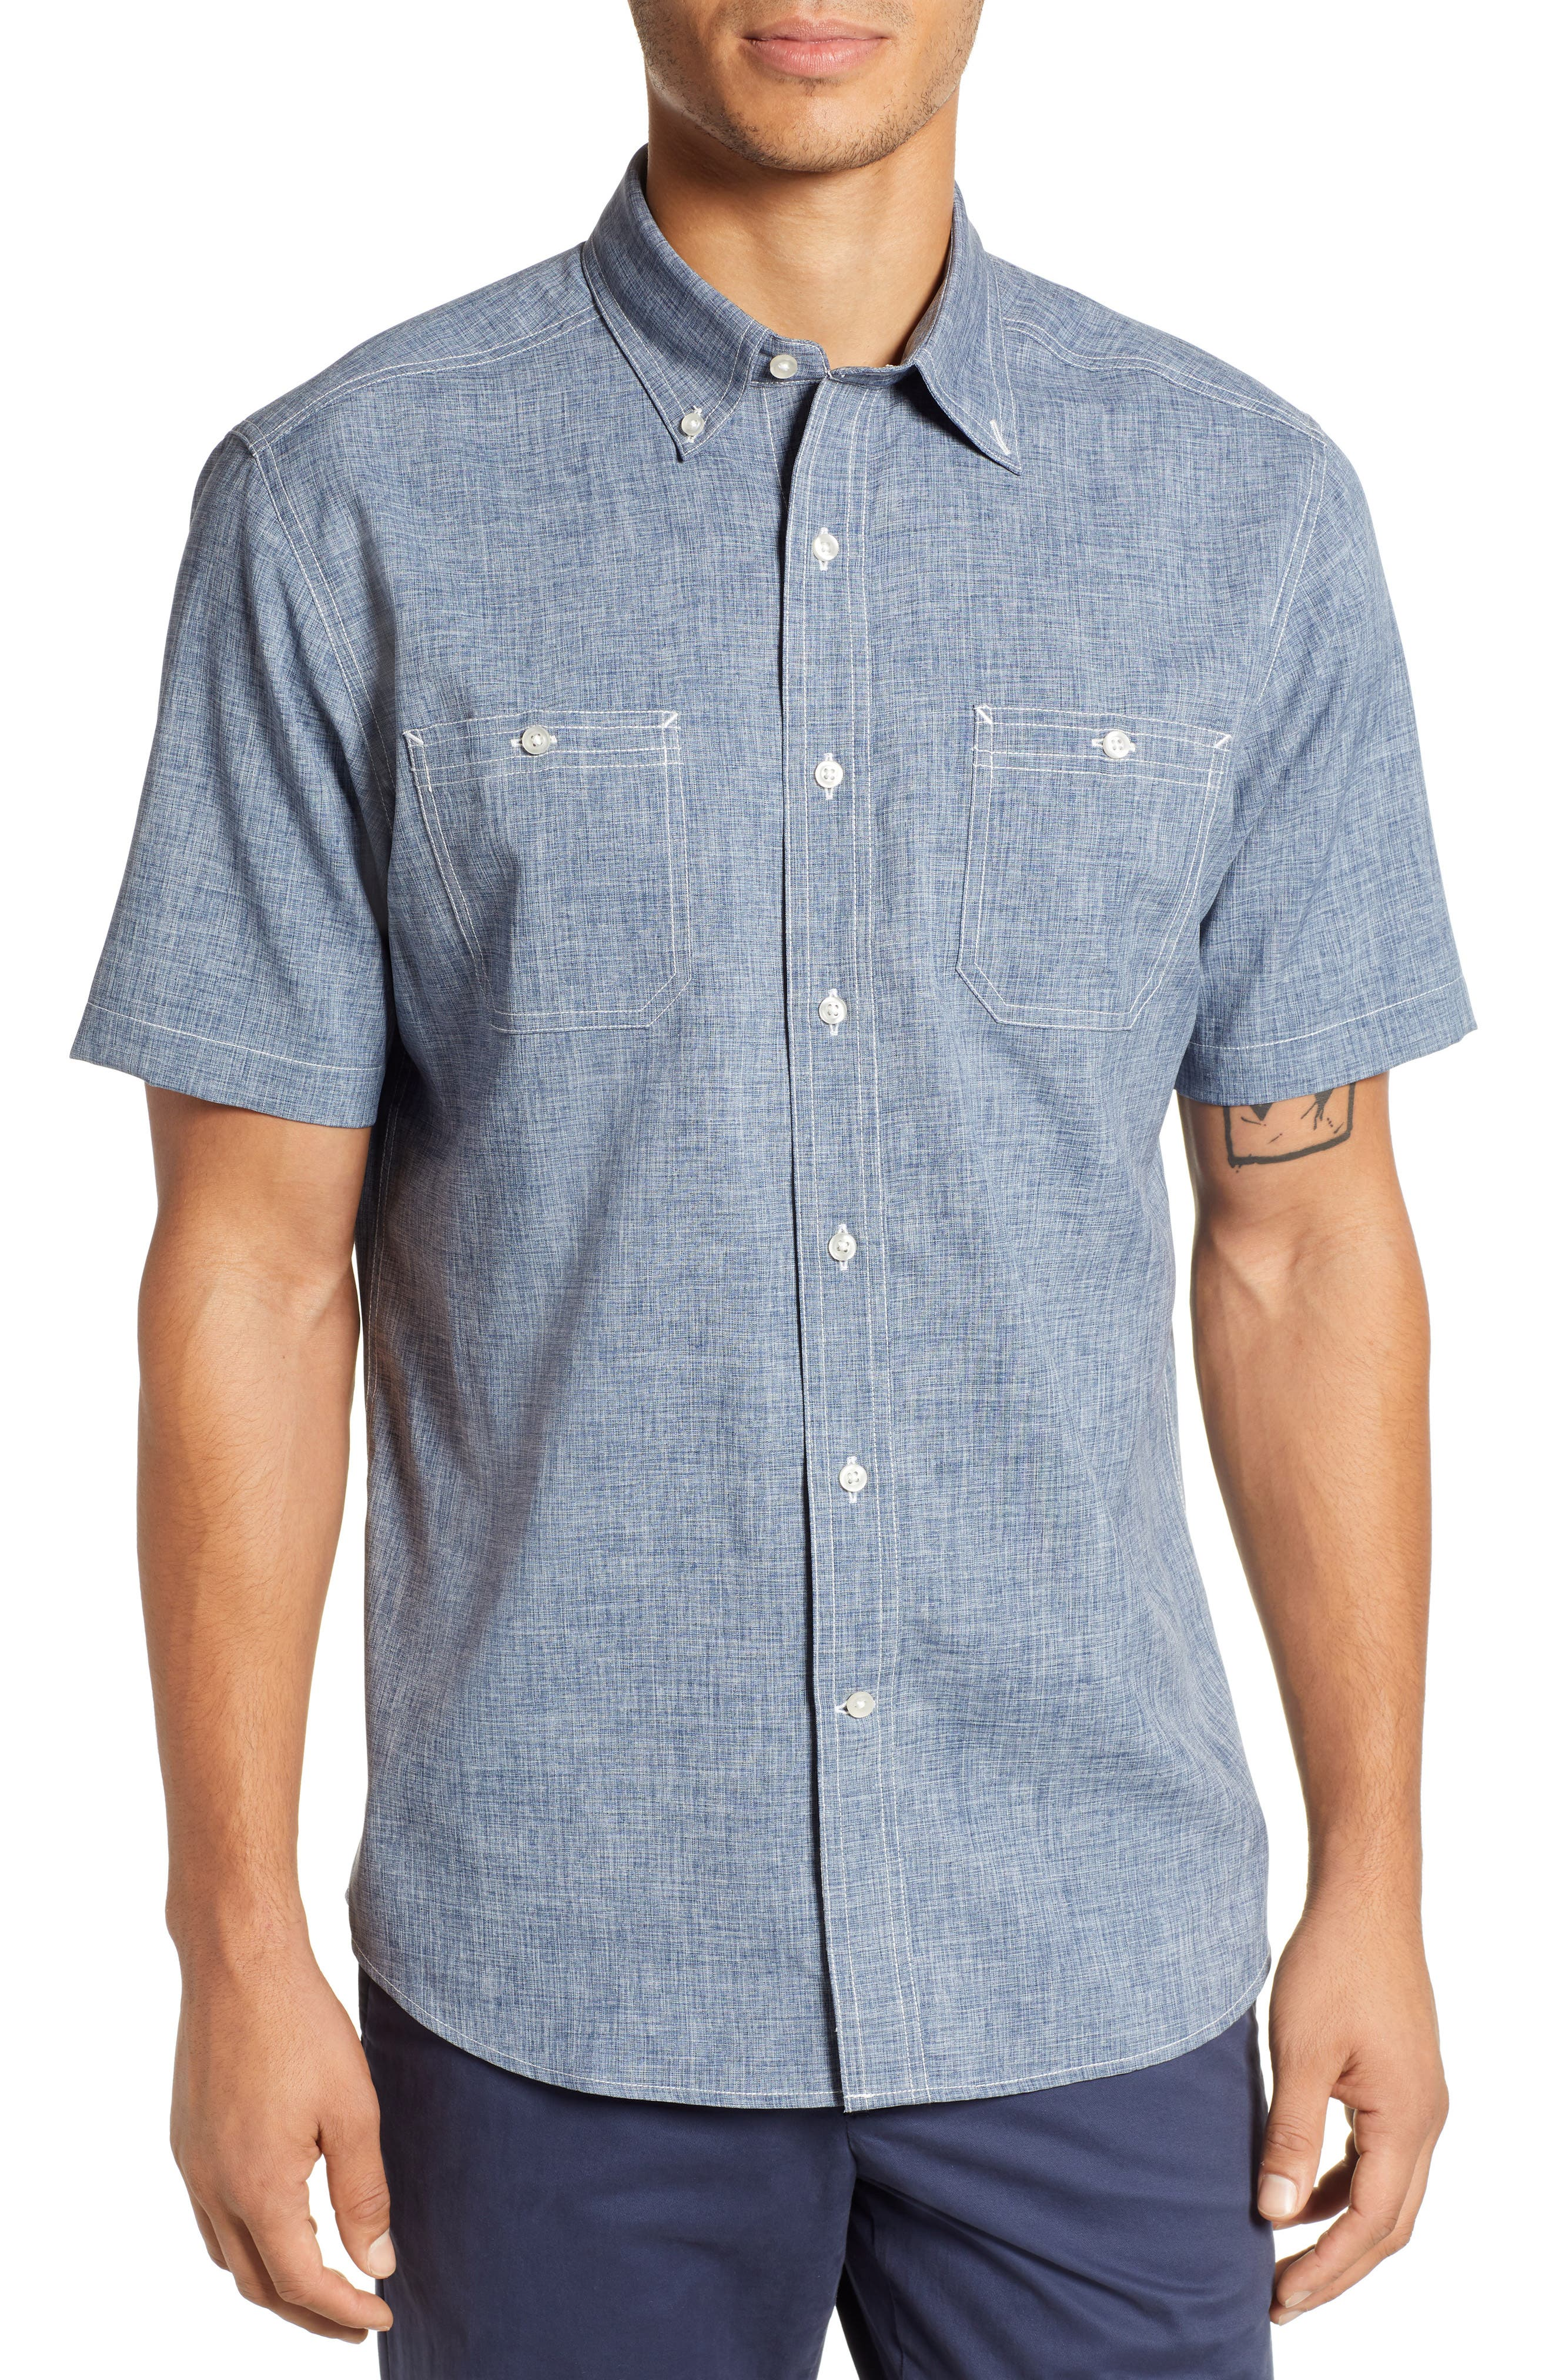 SOUTHERN TIDE St. Dockside Regular Fit Sport Shirt in Seven Seas Blue